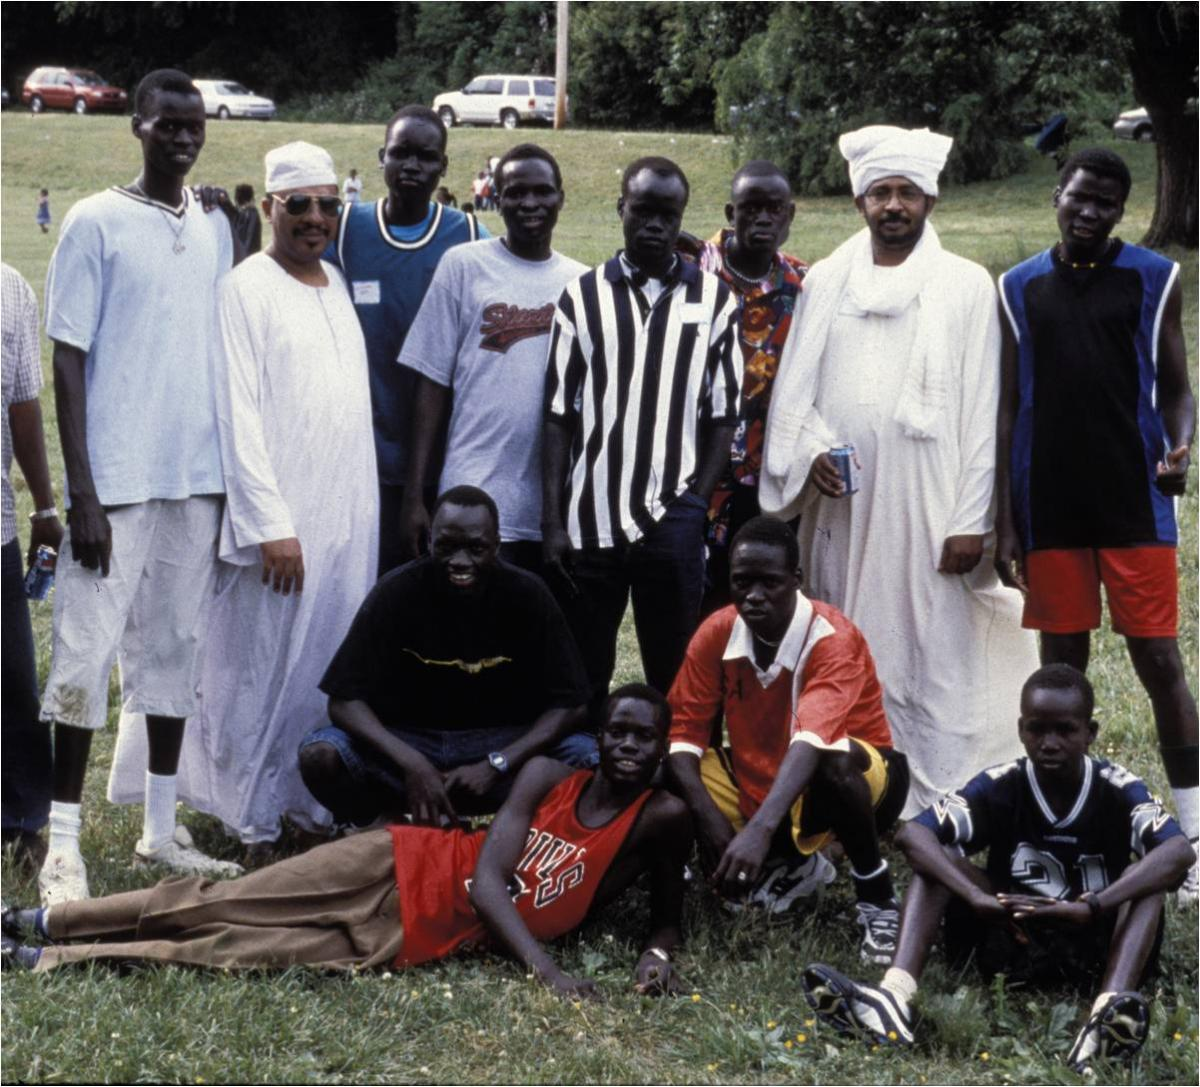 North and South Sudanese at a Sudanese Society picnic, Fairmount Park